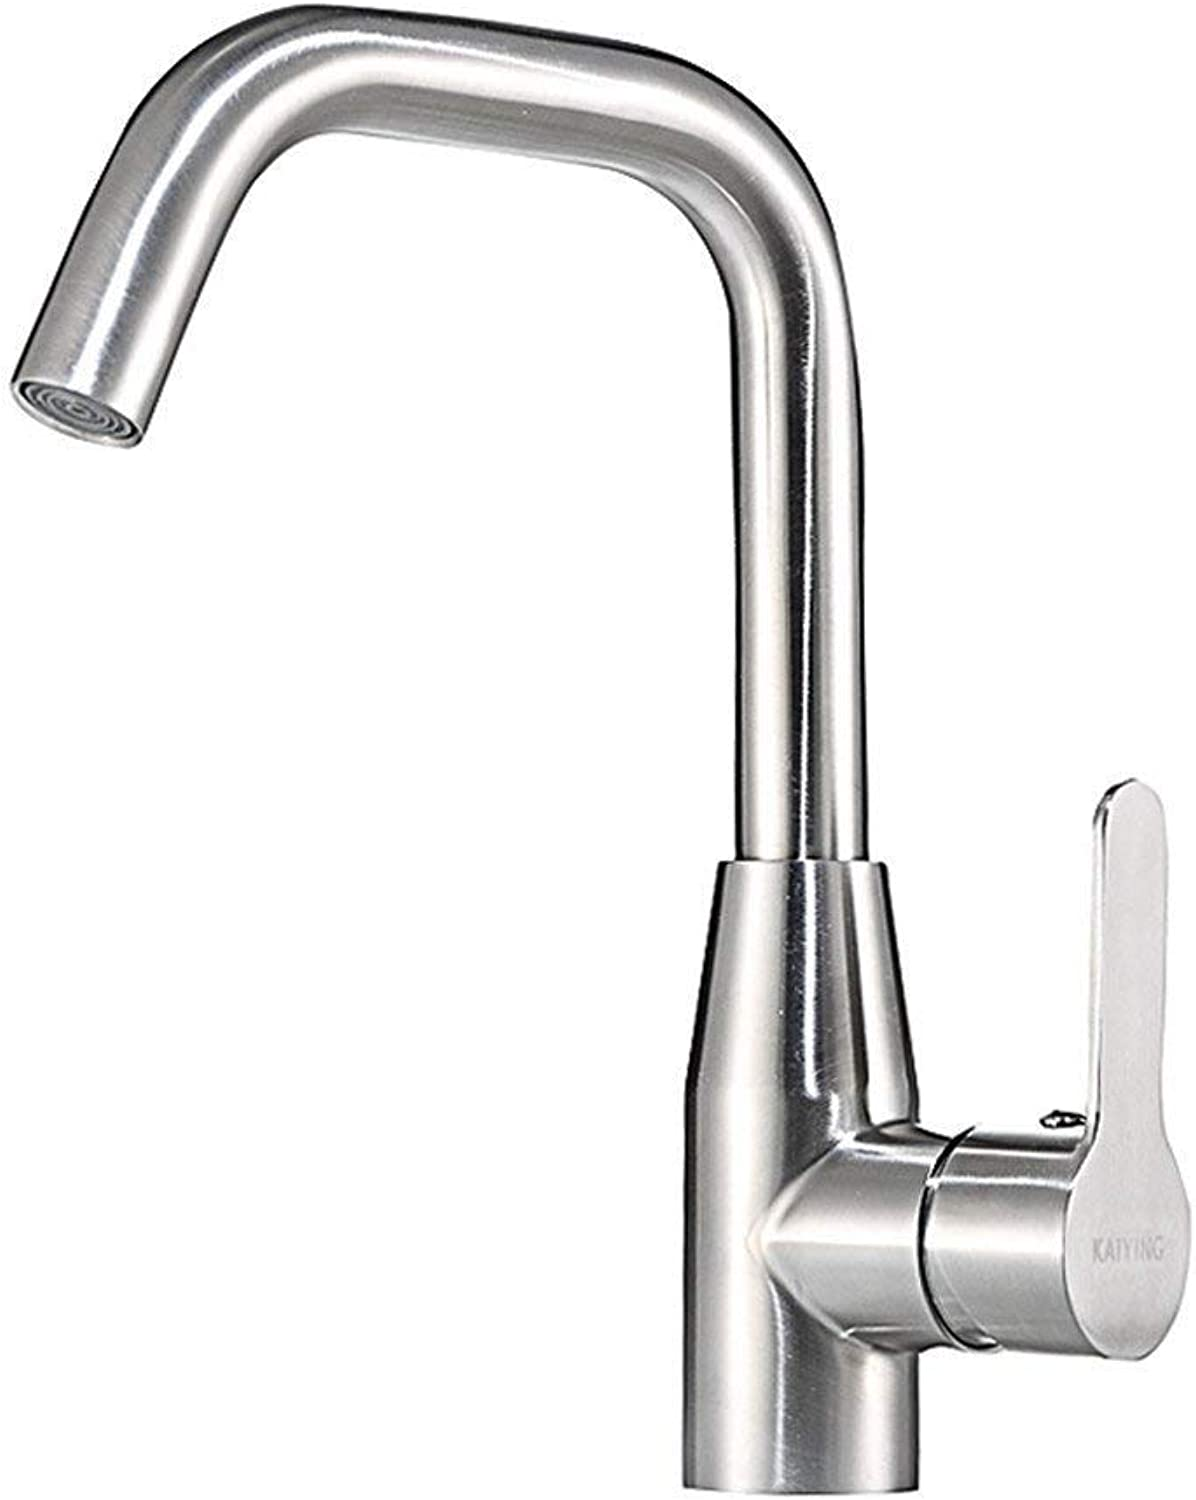 Oudan Kitchen Faucet Hot and Cold Basin Faucet 304 Stainless Steel Sink Wash Vegetable Basin Washbasin Faucet (color   -, Size   -)